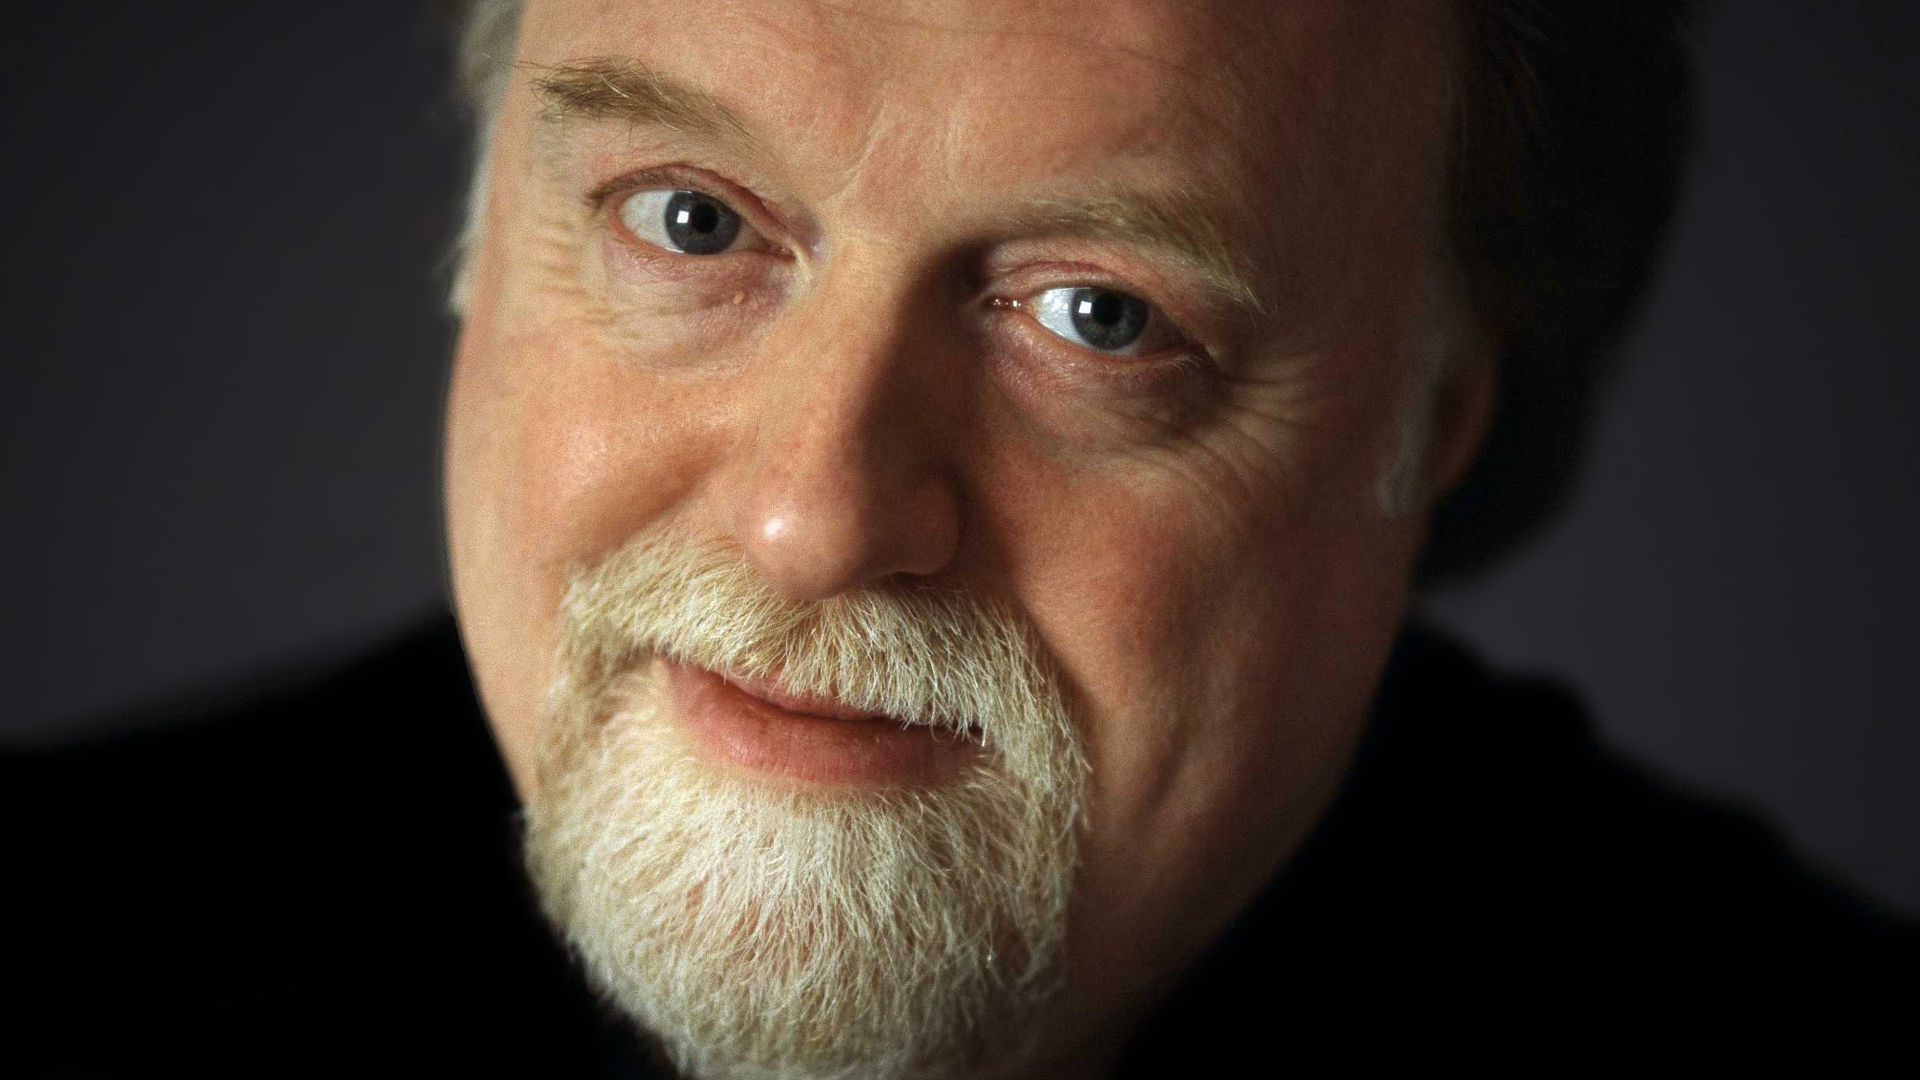 Pianosonat Nr 28 A Dur av Peter Donohoe